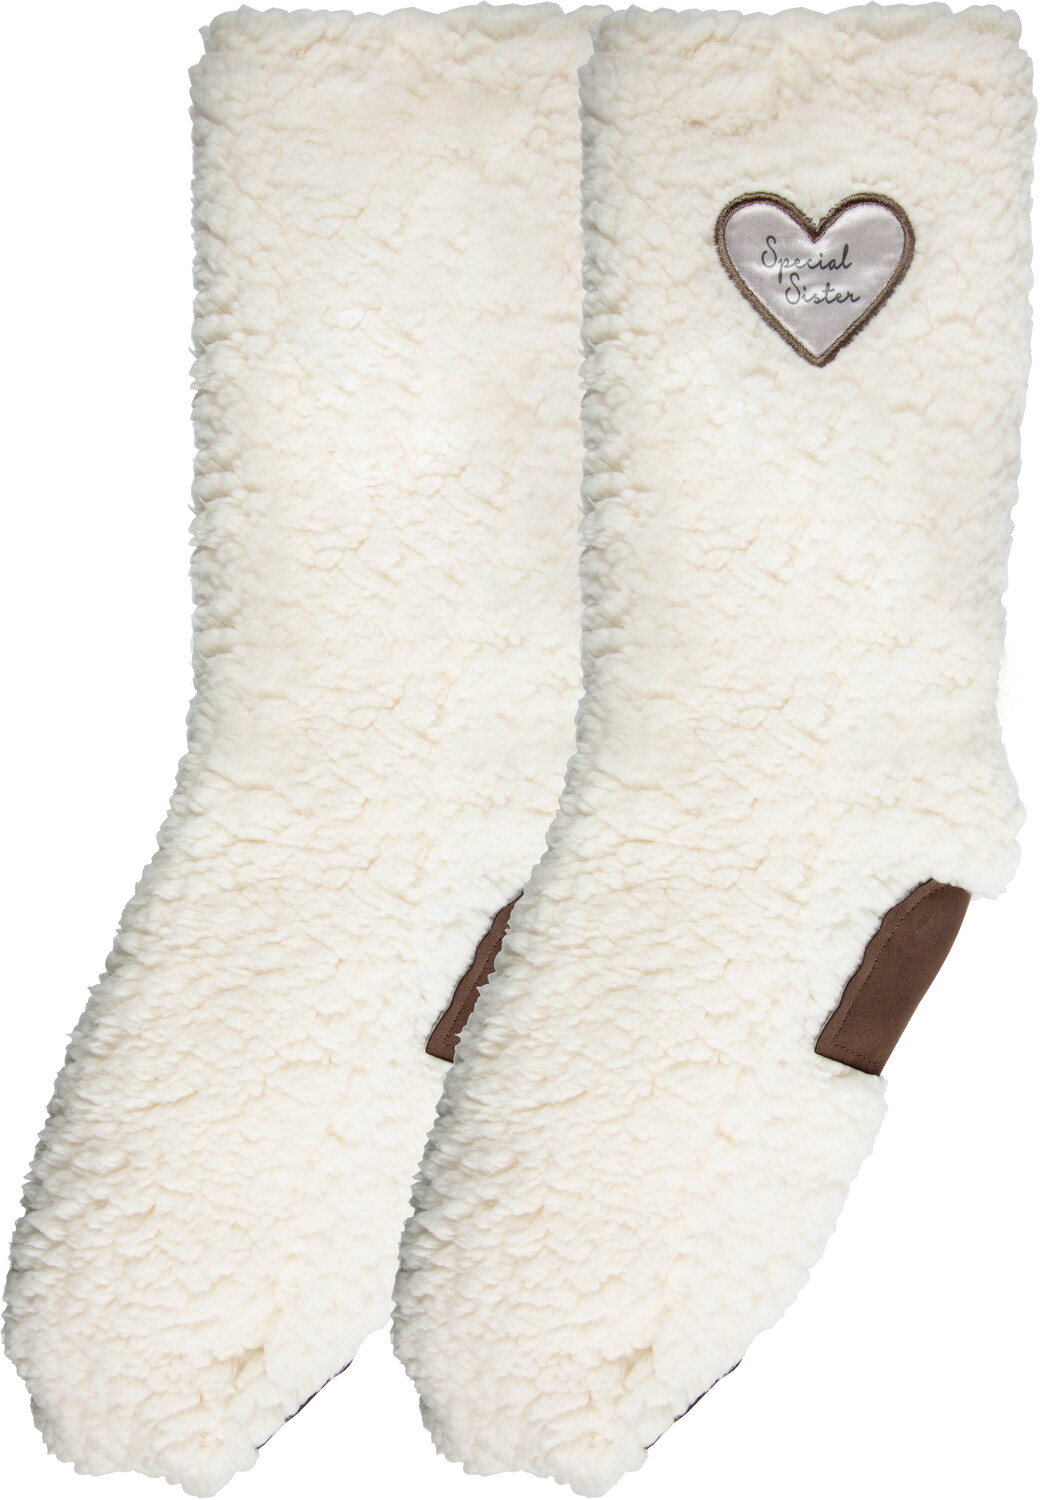 Special Sister by Comfort Collection - Special Sister - One Size Fits Most Sherpa Slipper